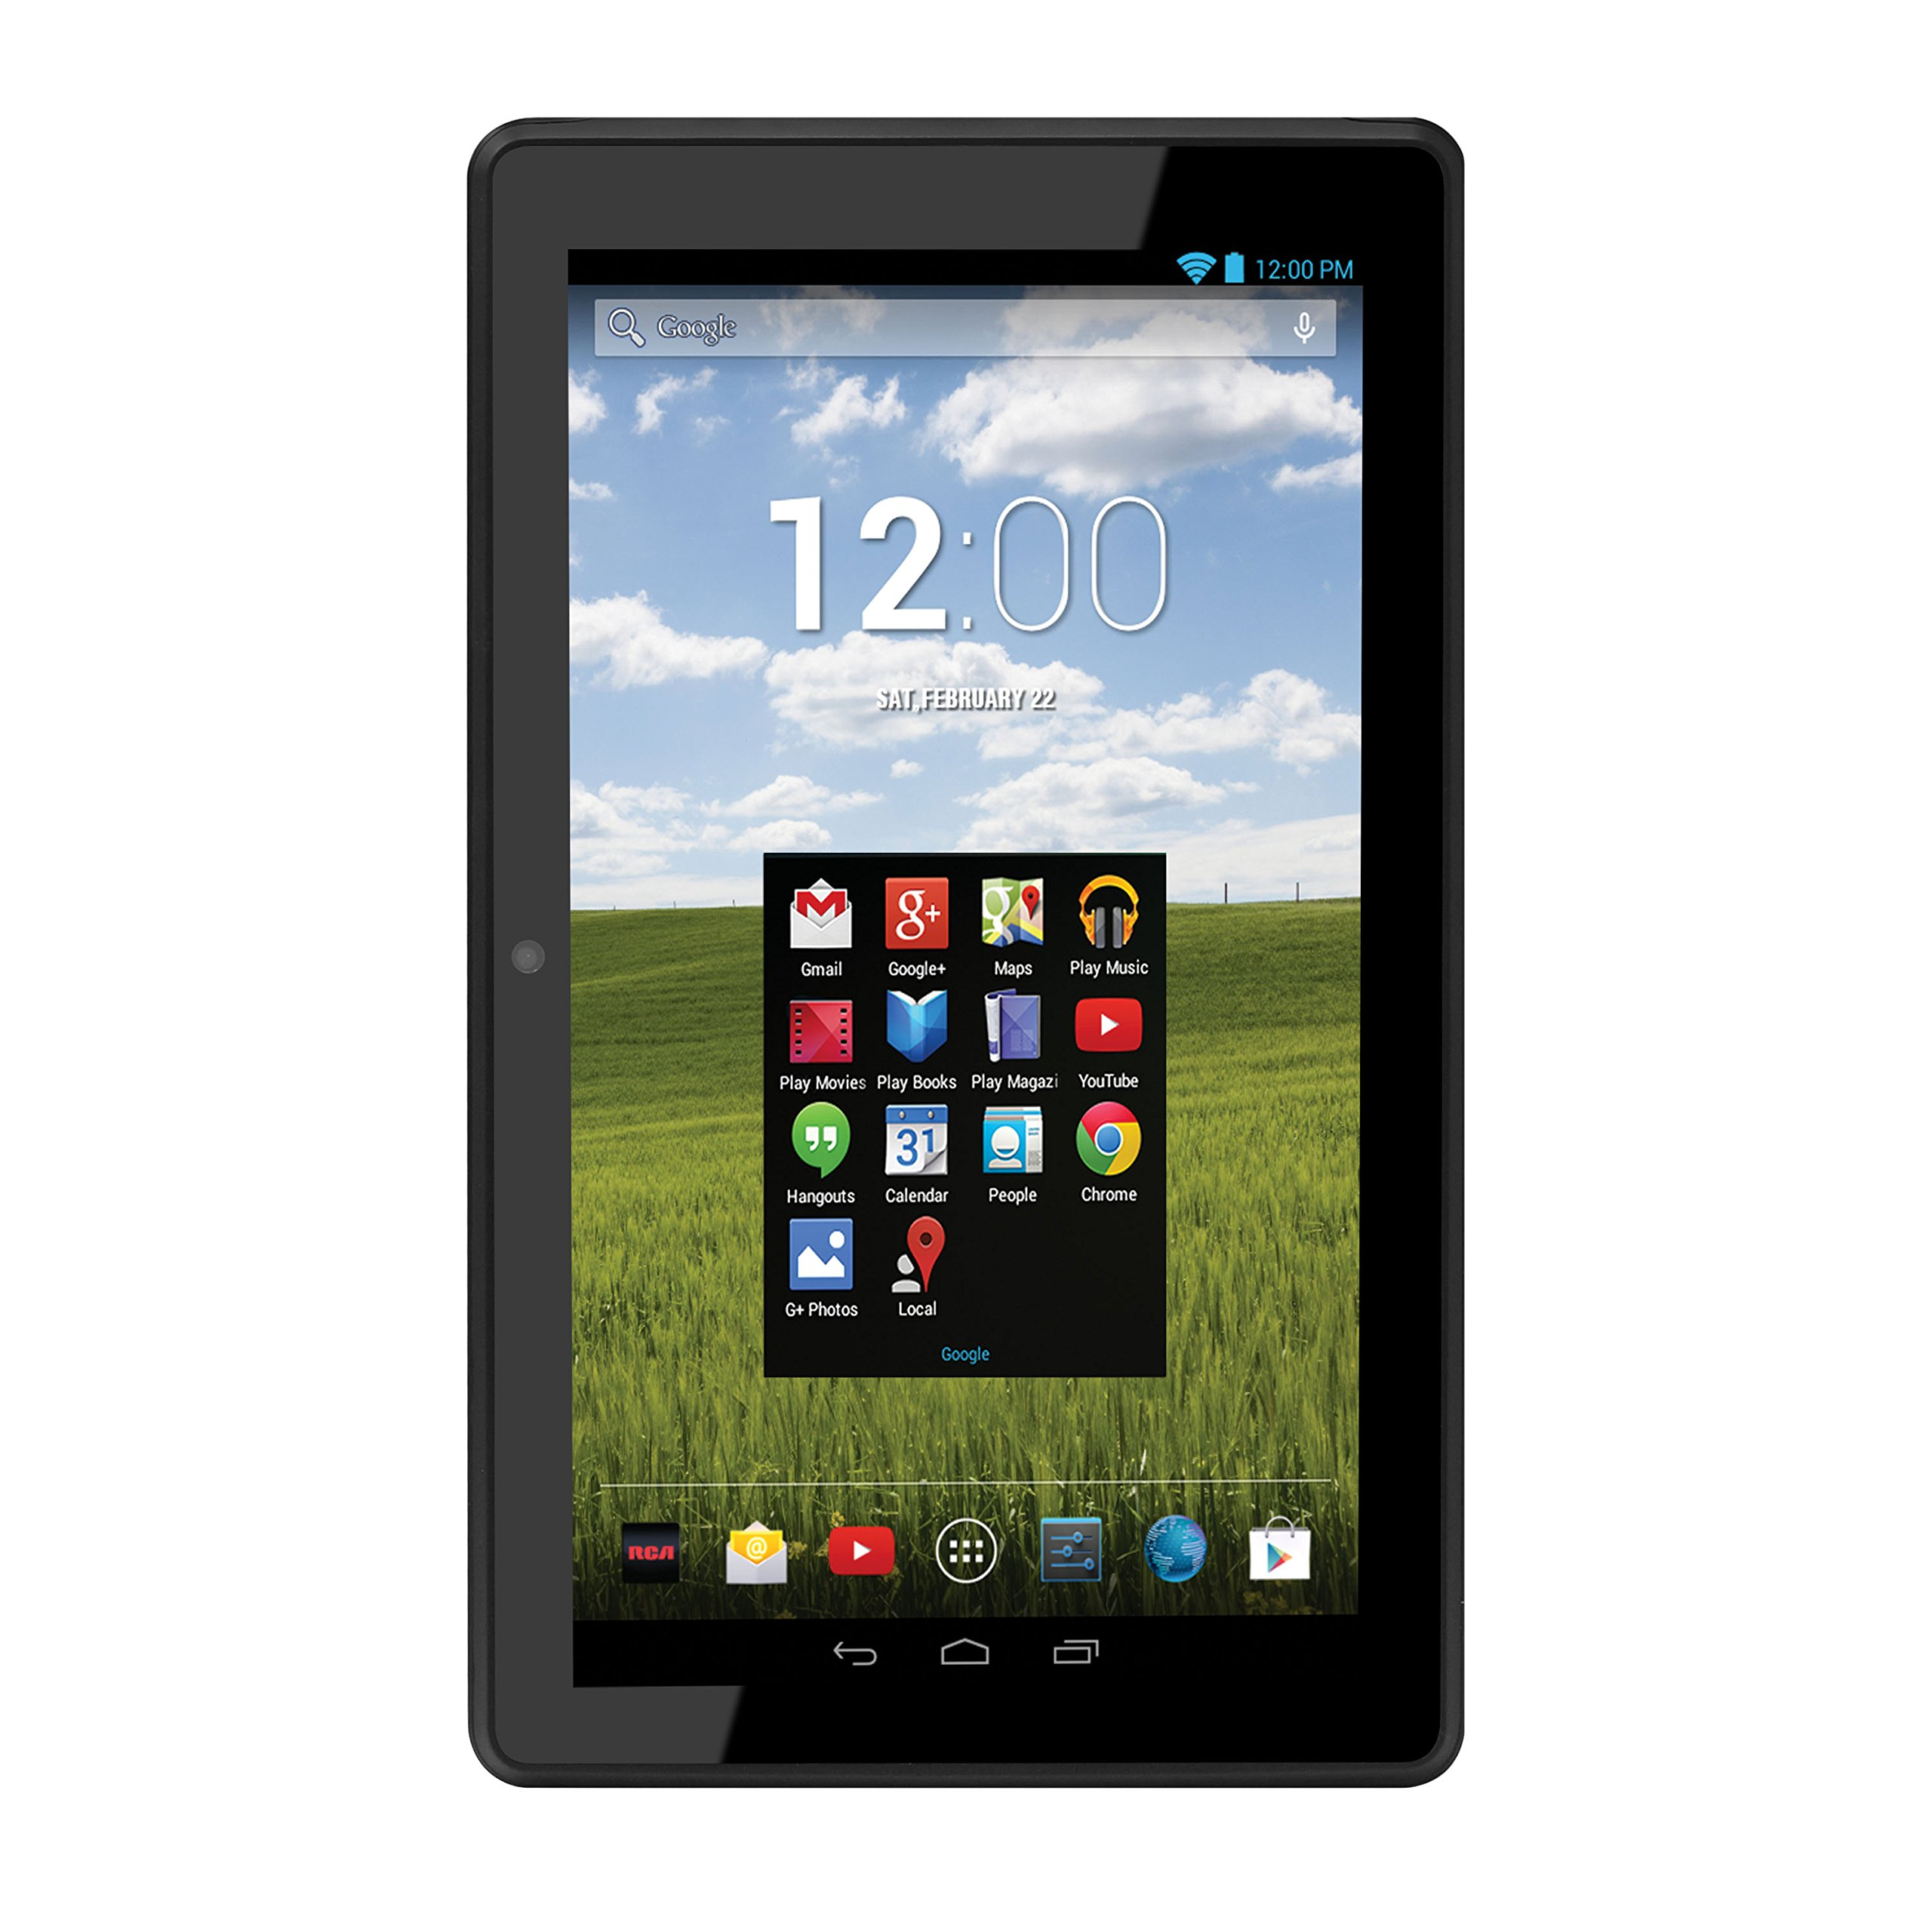 RCA Pro10 Edition 10.1 Inch Tablet with Folio Keyboard Case and Dual Camera - 16GB (Android 4.2.2 Jelly Bean, Google Play), (RCT6103W46) by RCA